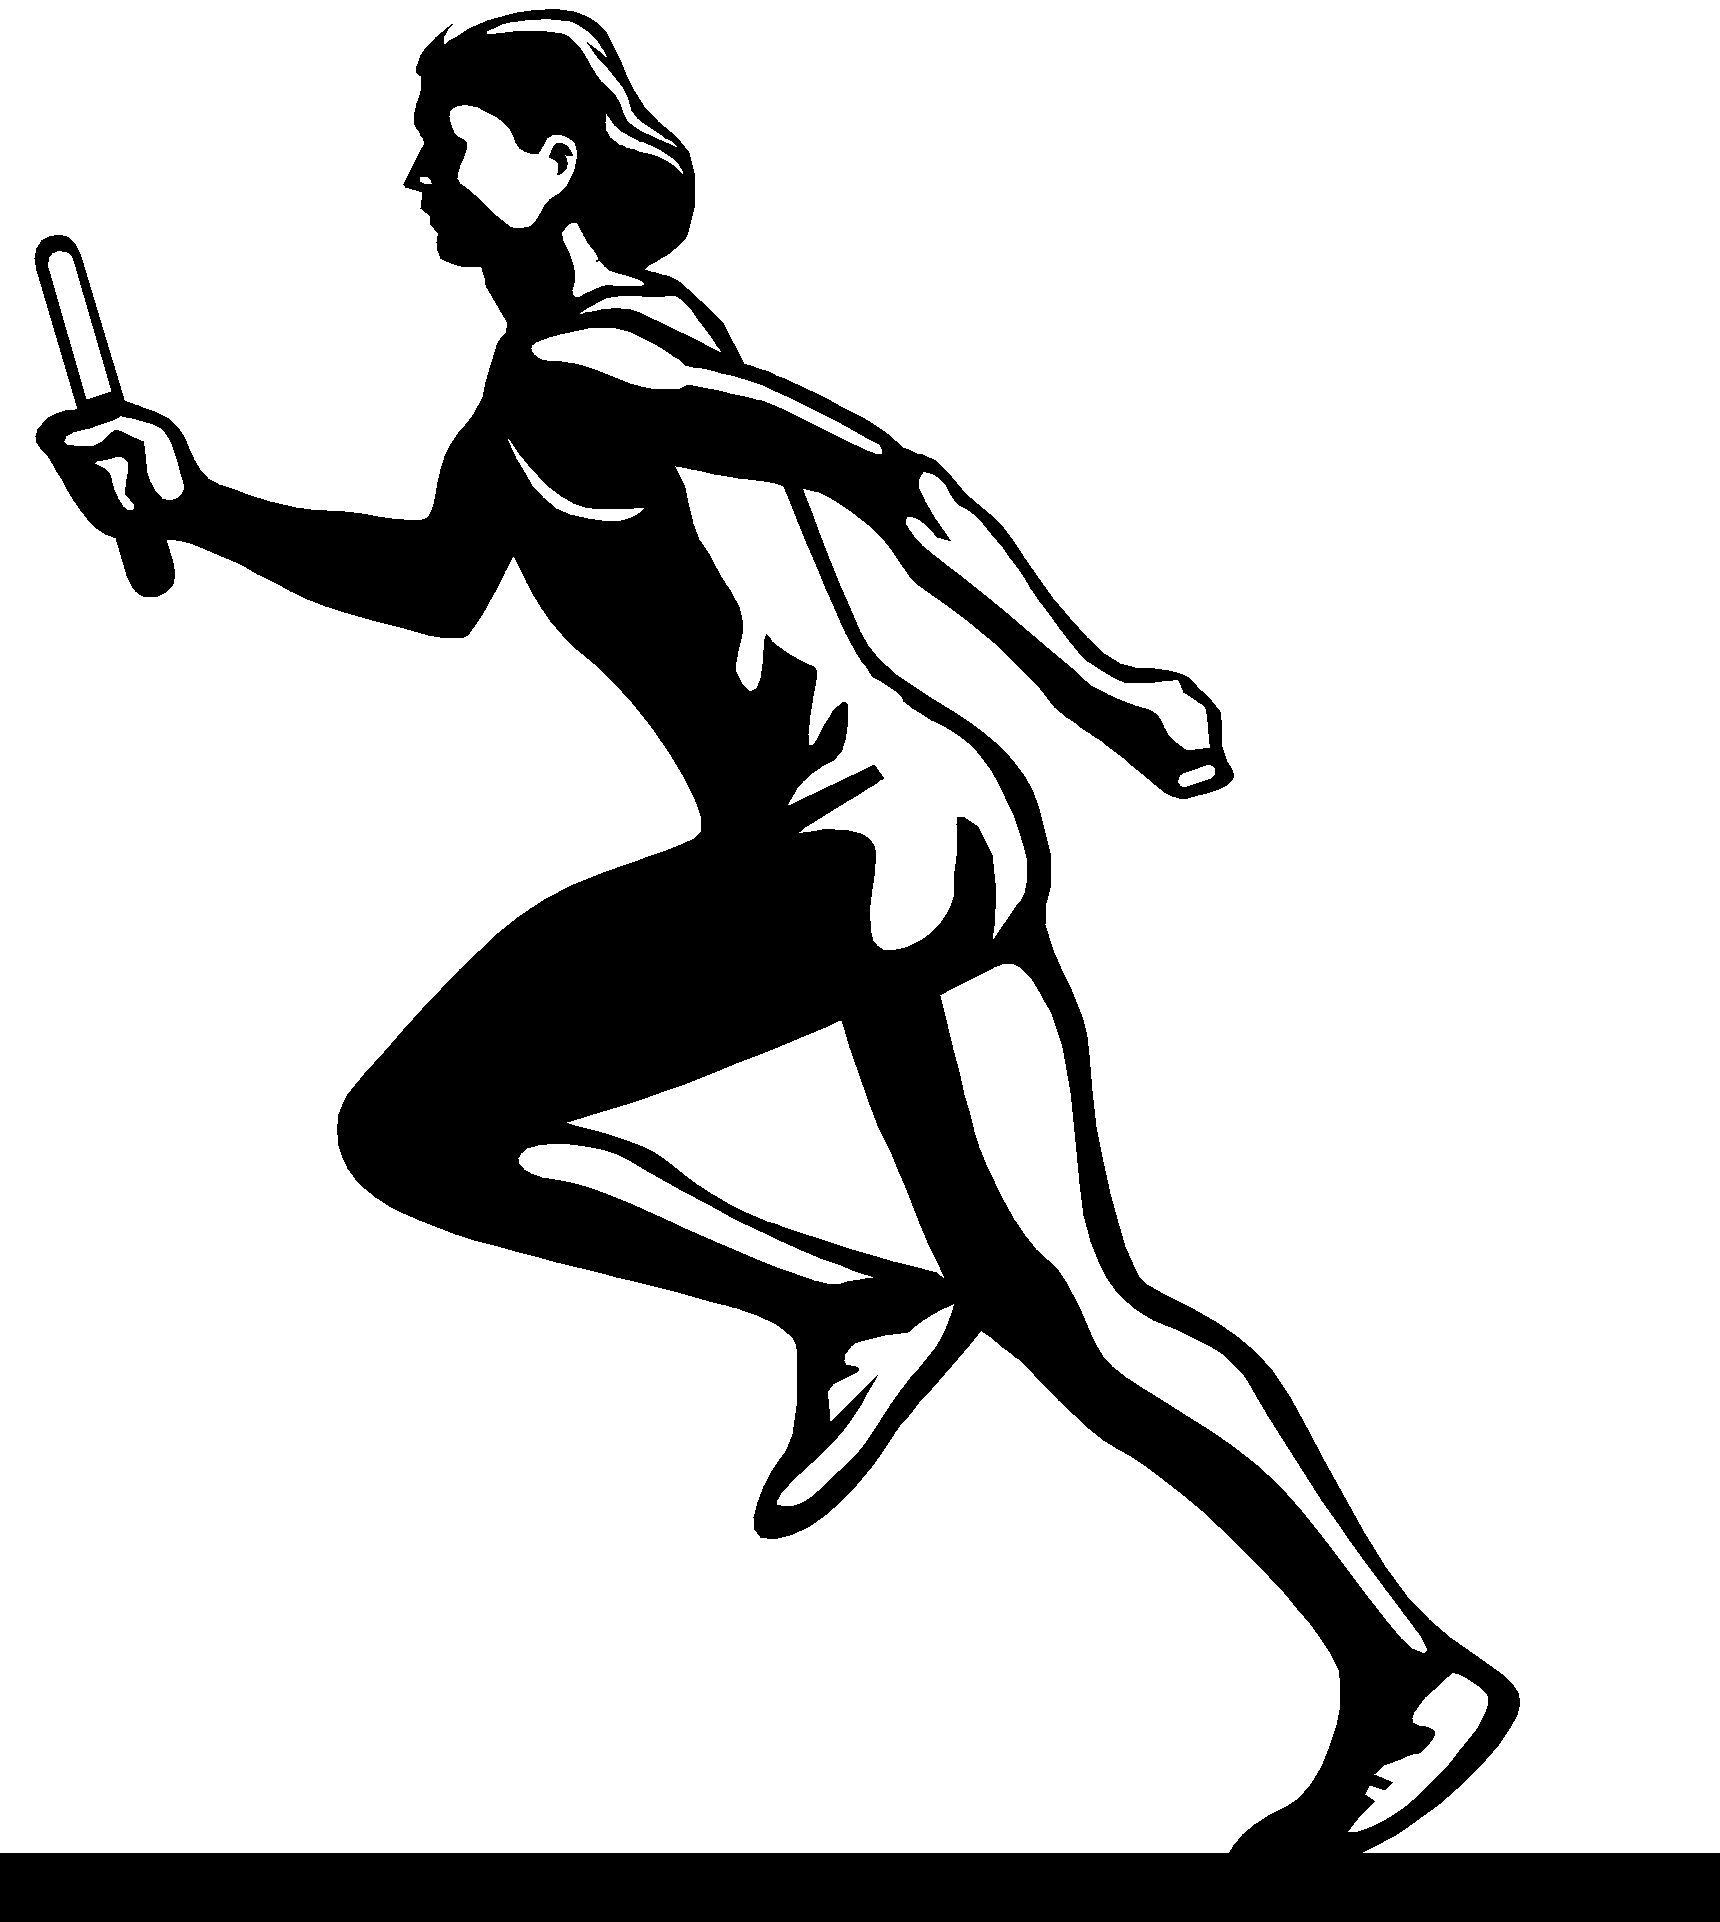 Track and field clip art the cliparts 2.